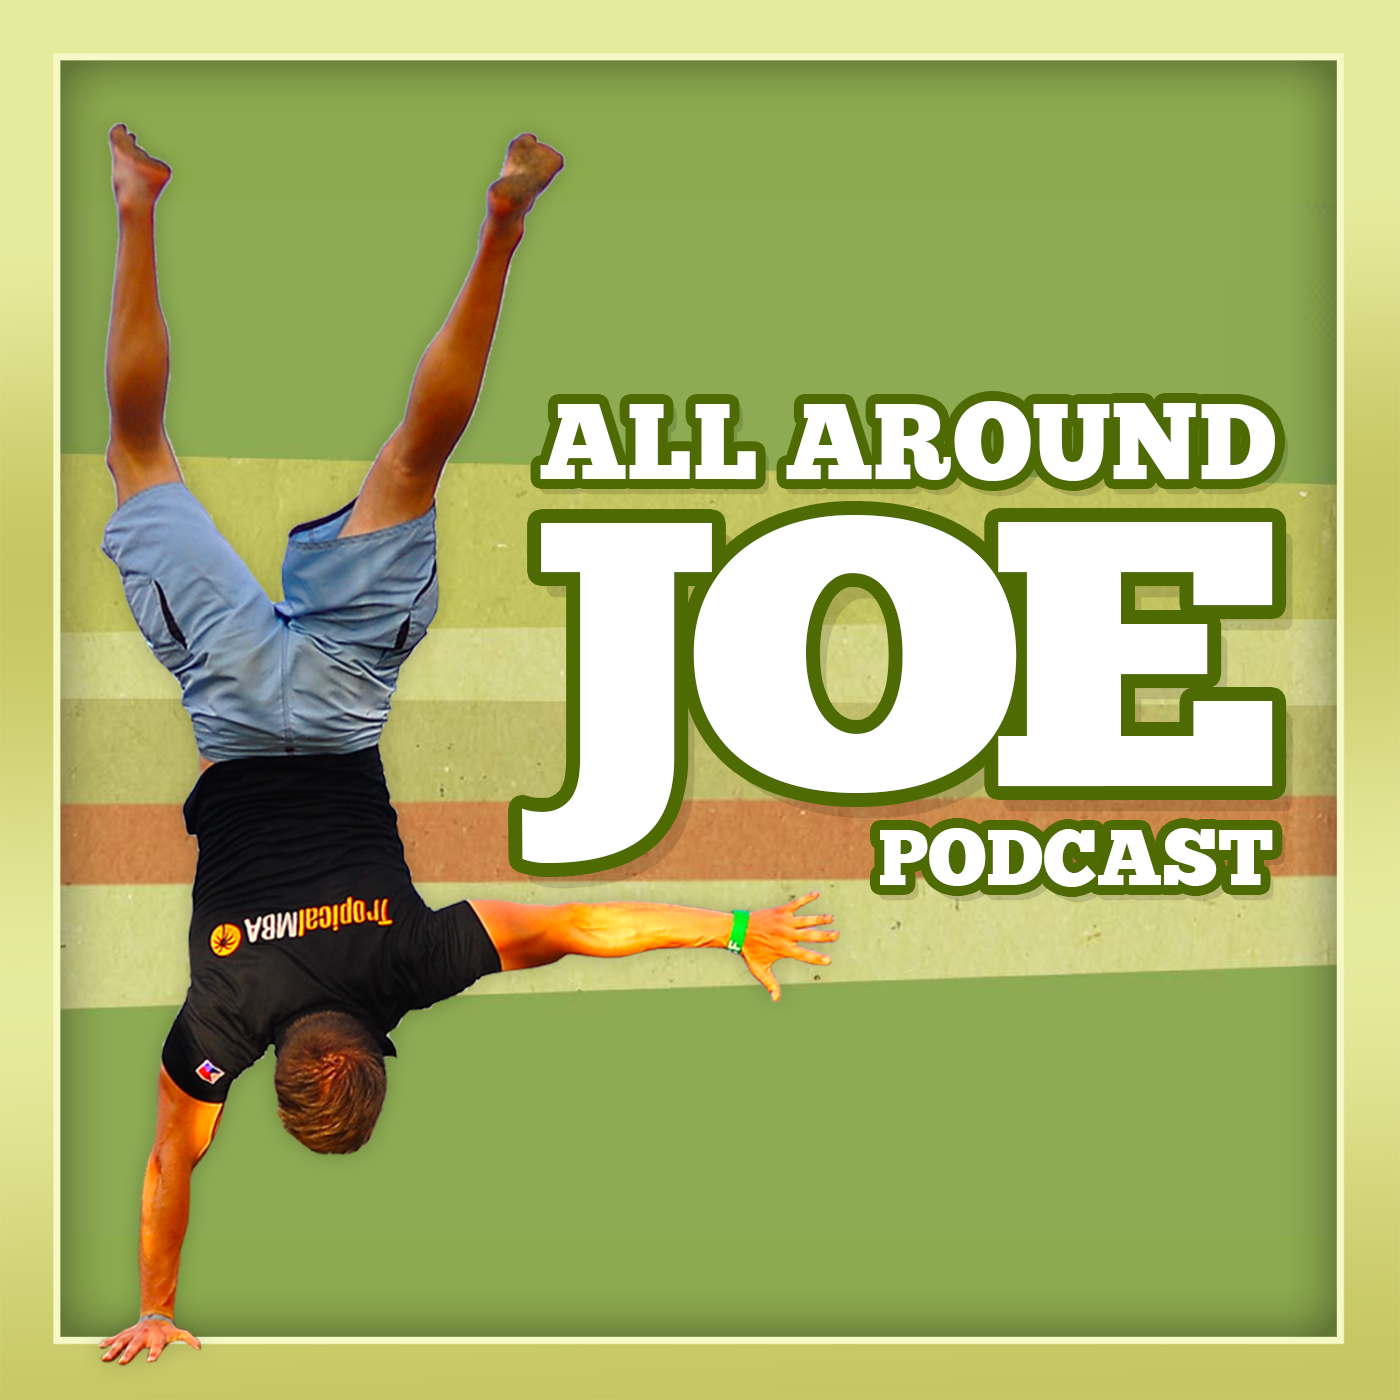 The AllAroundJoe Podcast: Fitness | CrossFit | Nutrition